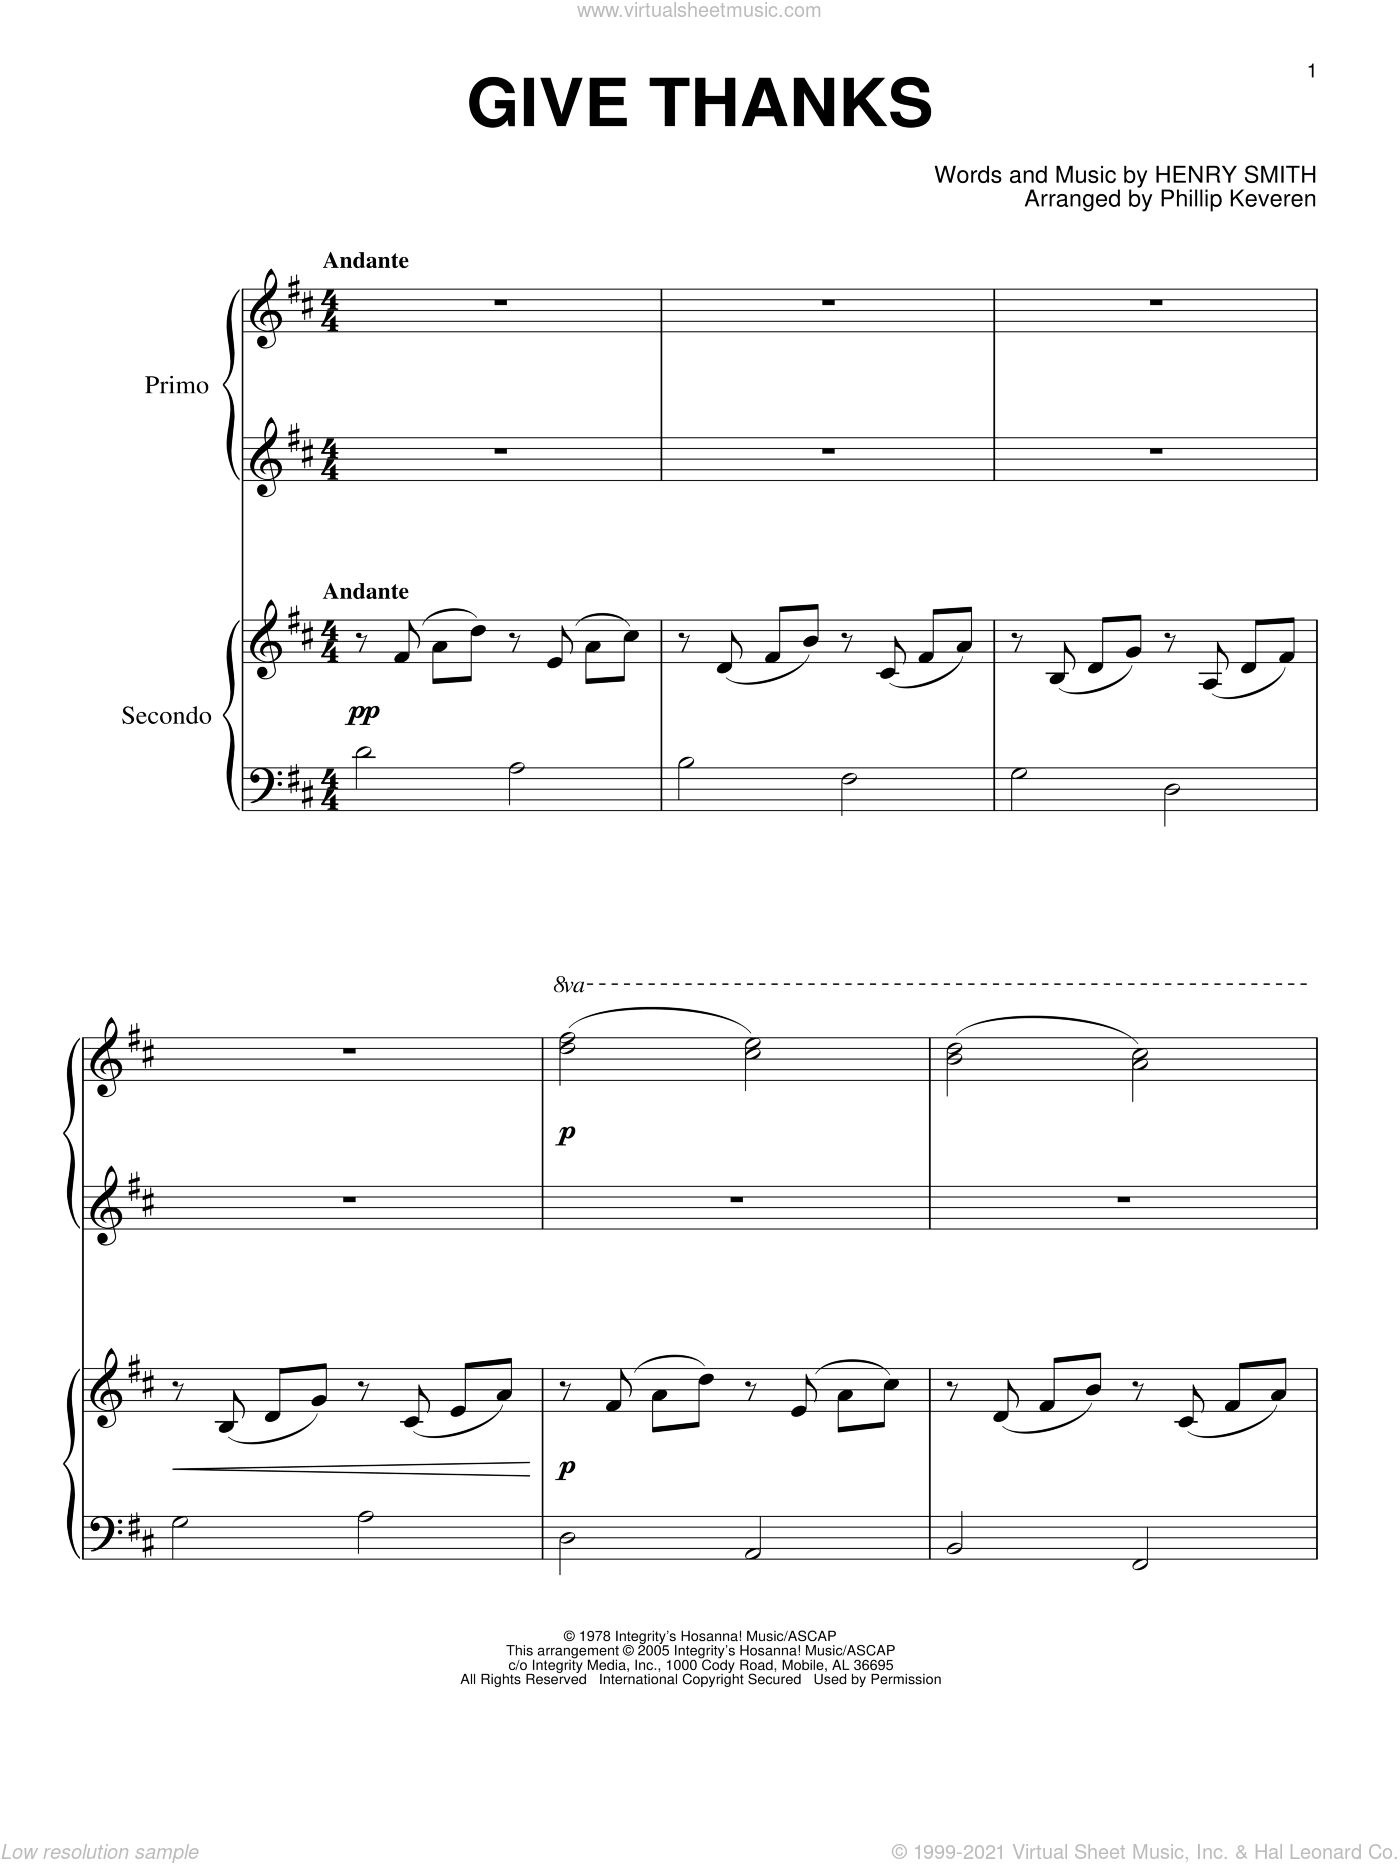 Give Thanks sheet music for piano four hands by Henry Smith and Phillip Keveren, intermediate